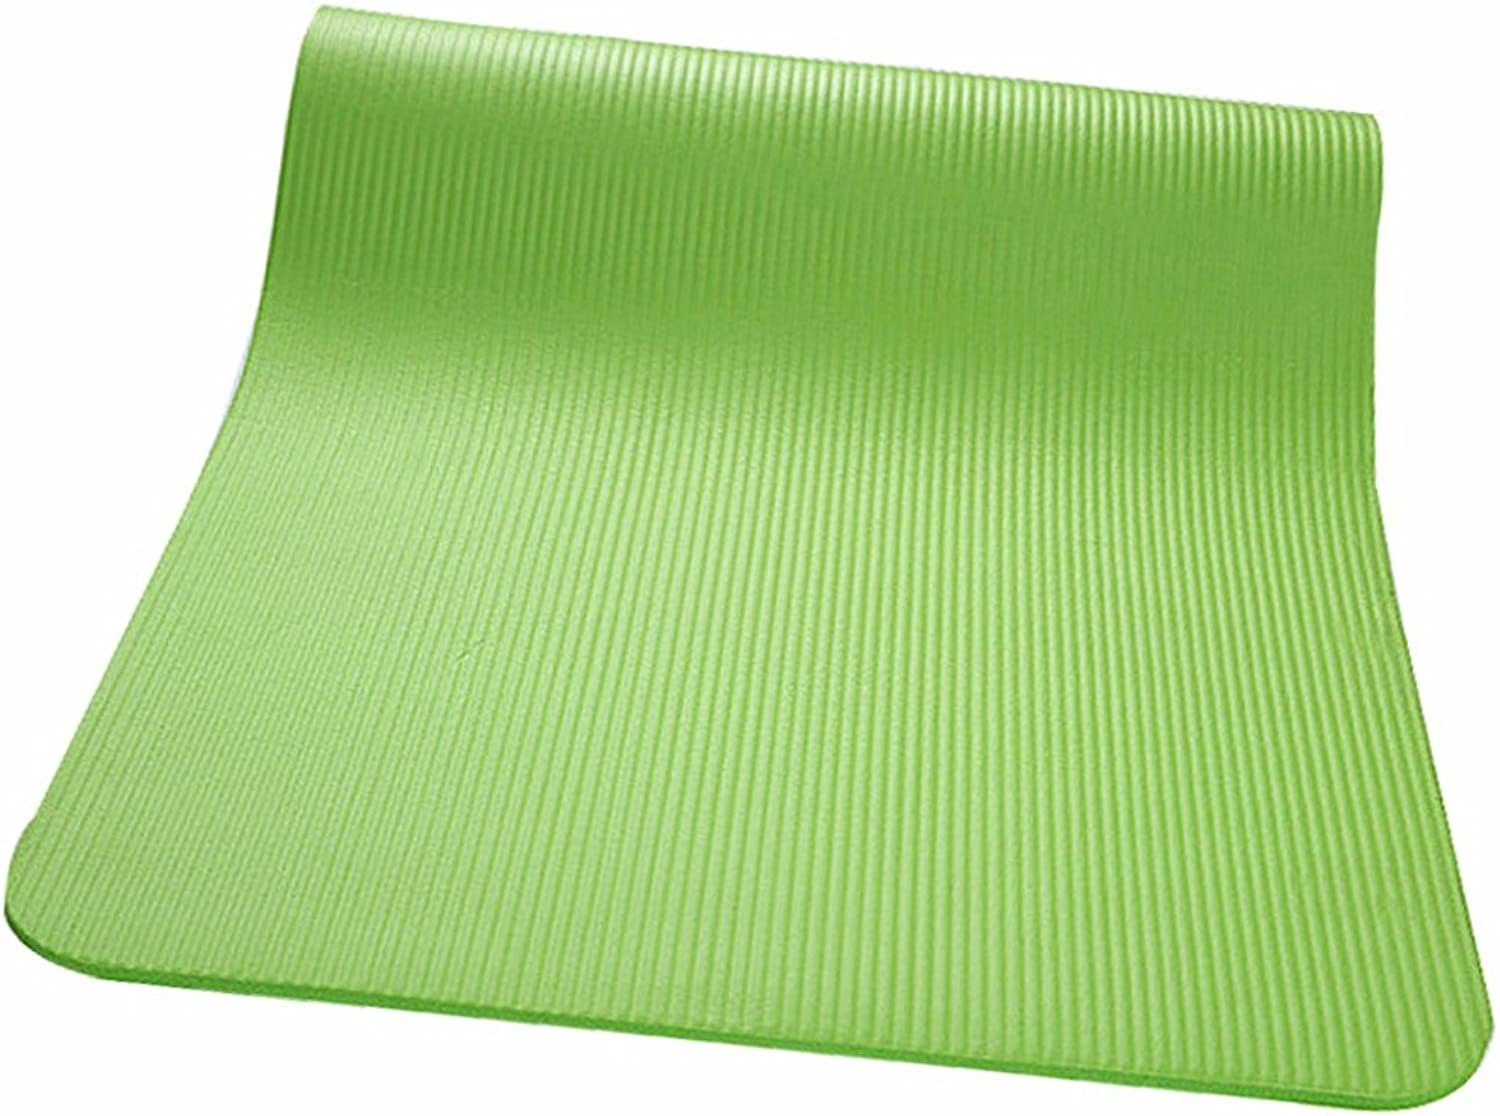 GTVERNHEnvironmental thick yoga mat beginners fitness pad antislip pad men and women dance movements and odorless 18361cm, green